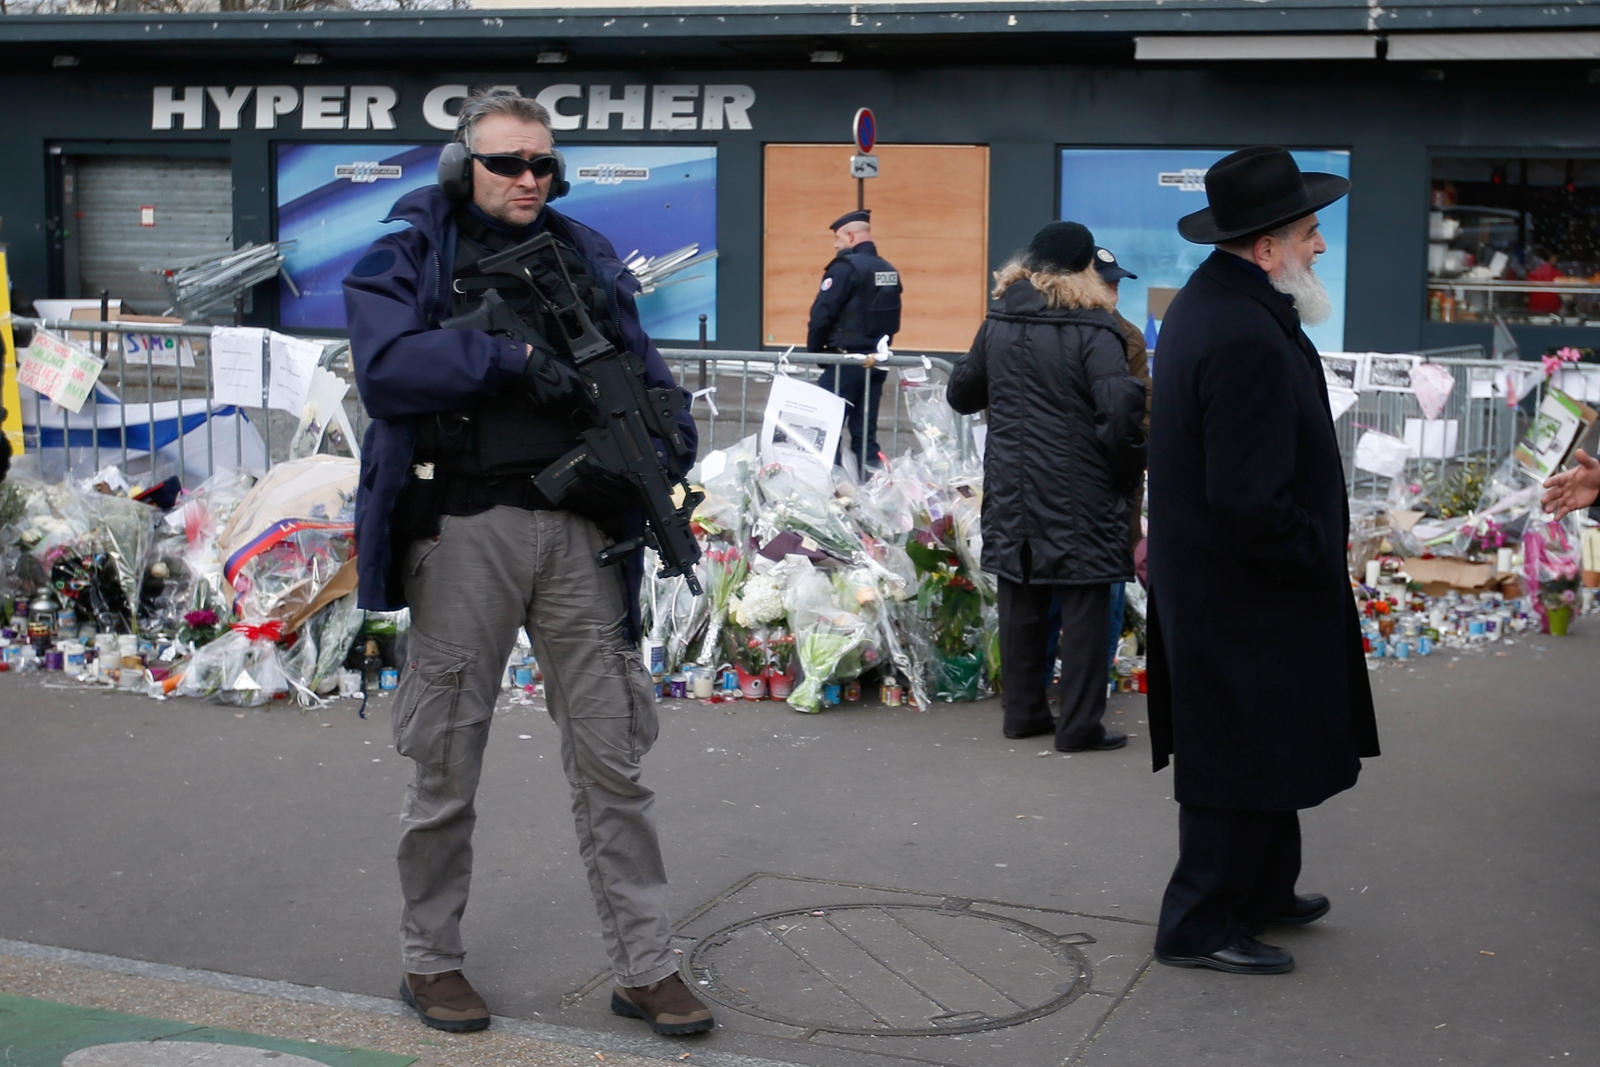 Hyper Cacher supermarket attack Paris